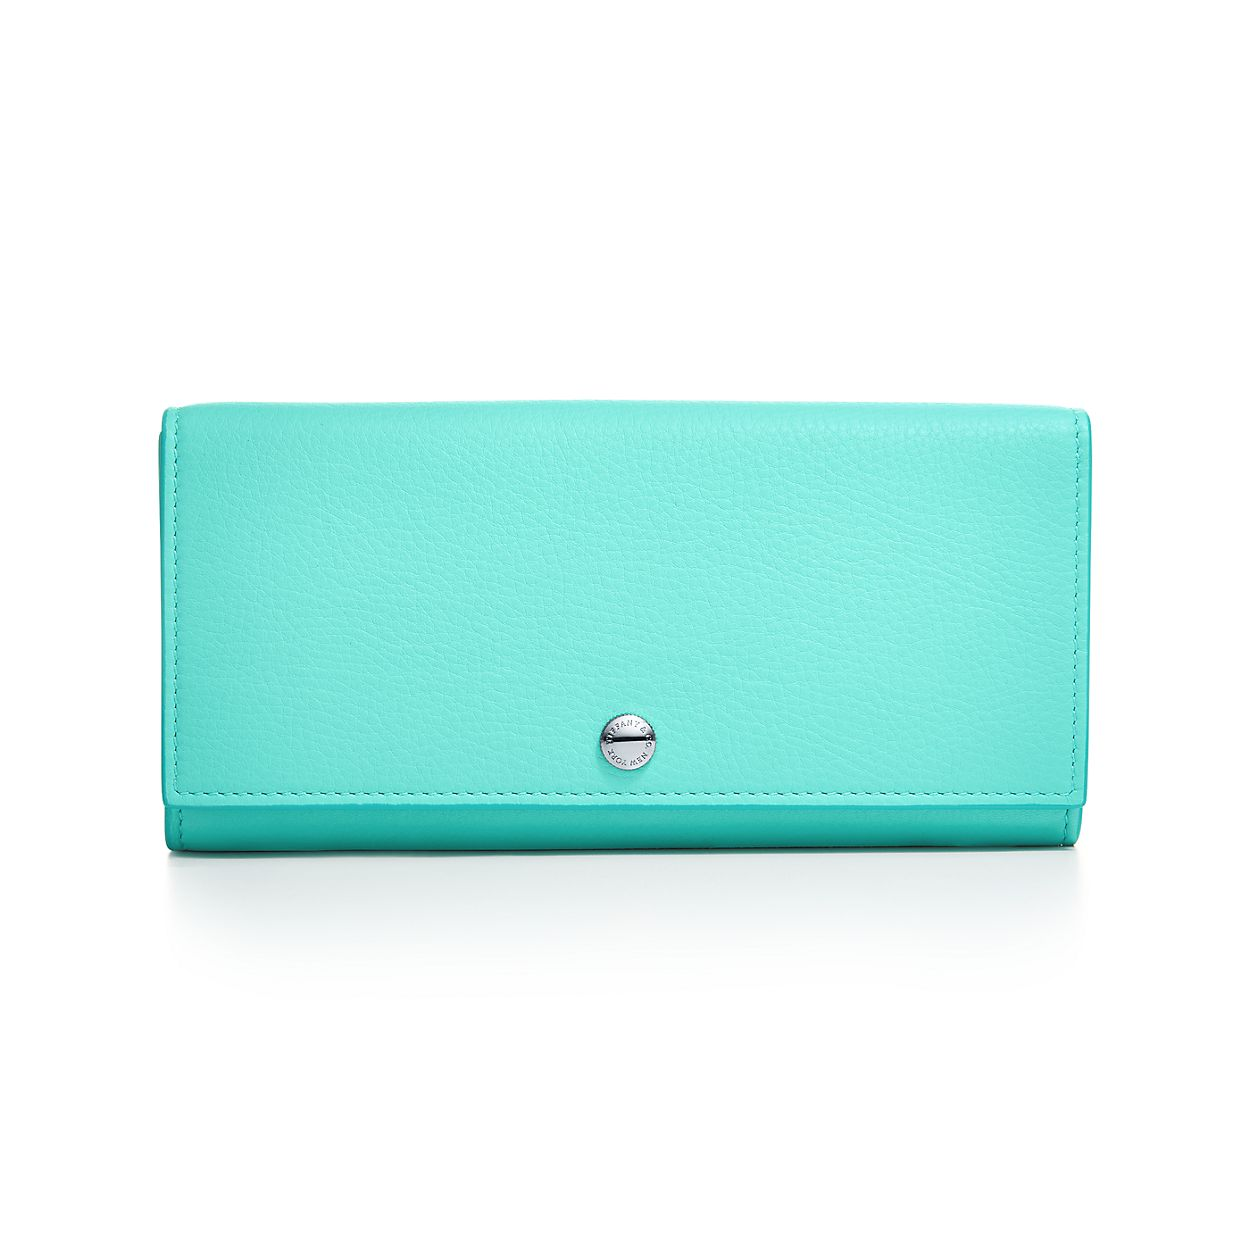 Zip wallet in Tiffany Blue grain calfskin leather Tiffany & Co. uPUoL